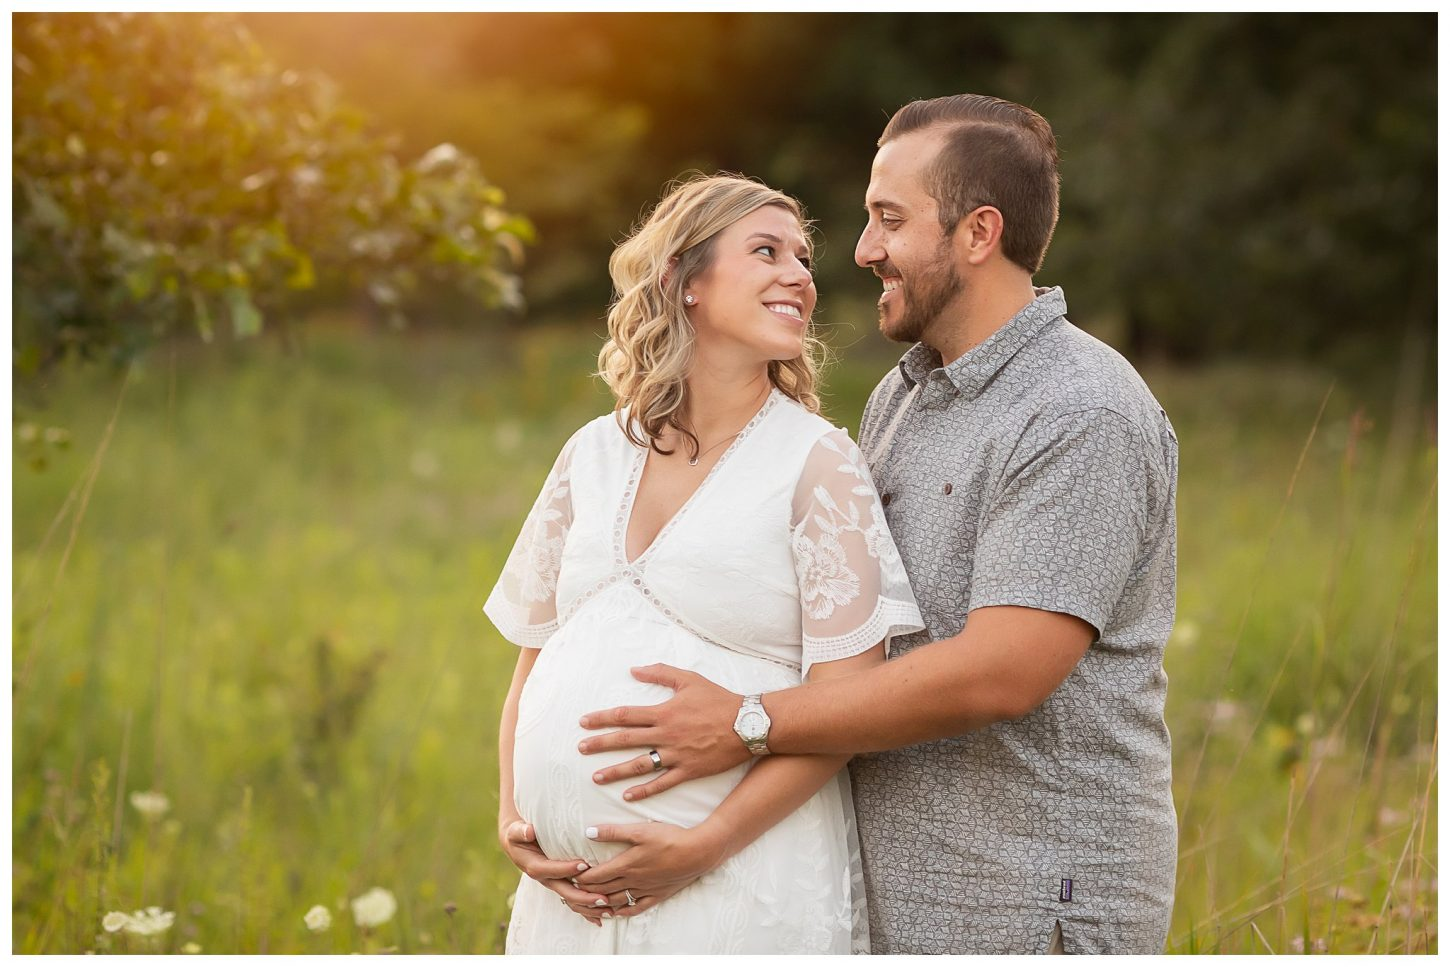 summer maternity session in Ann Arbor